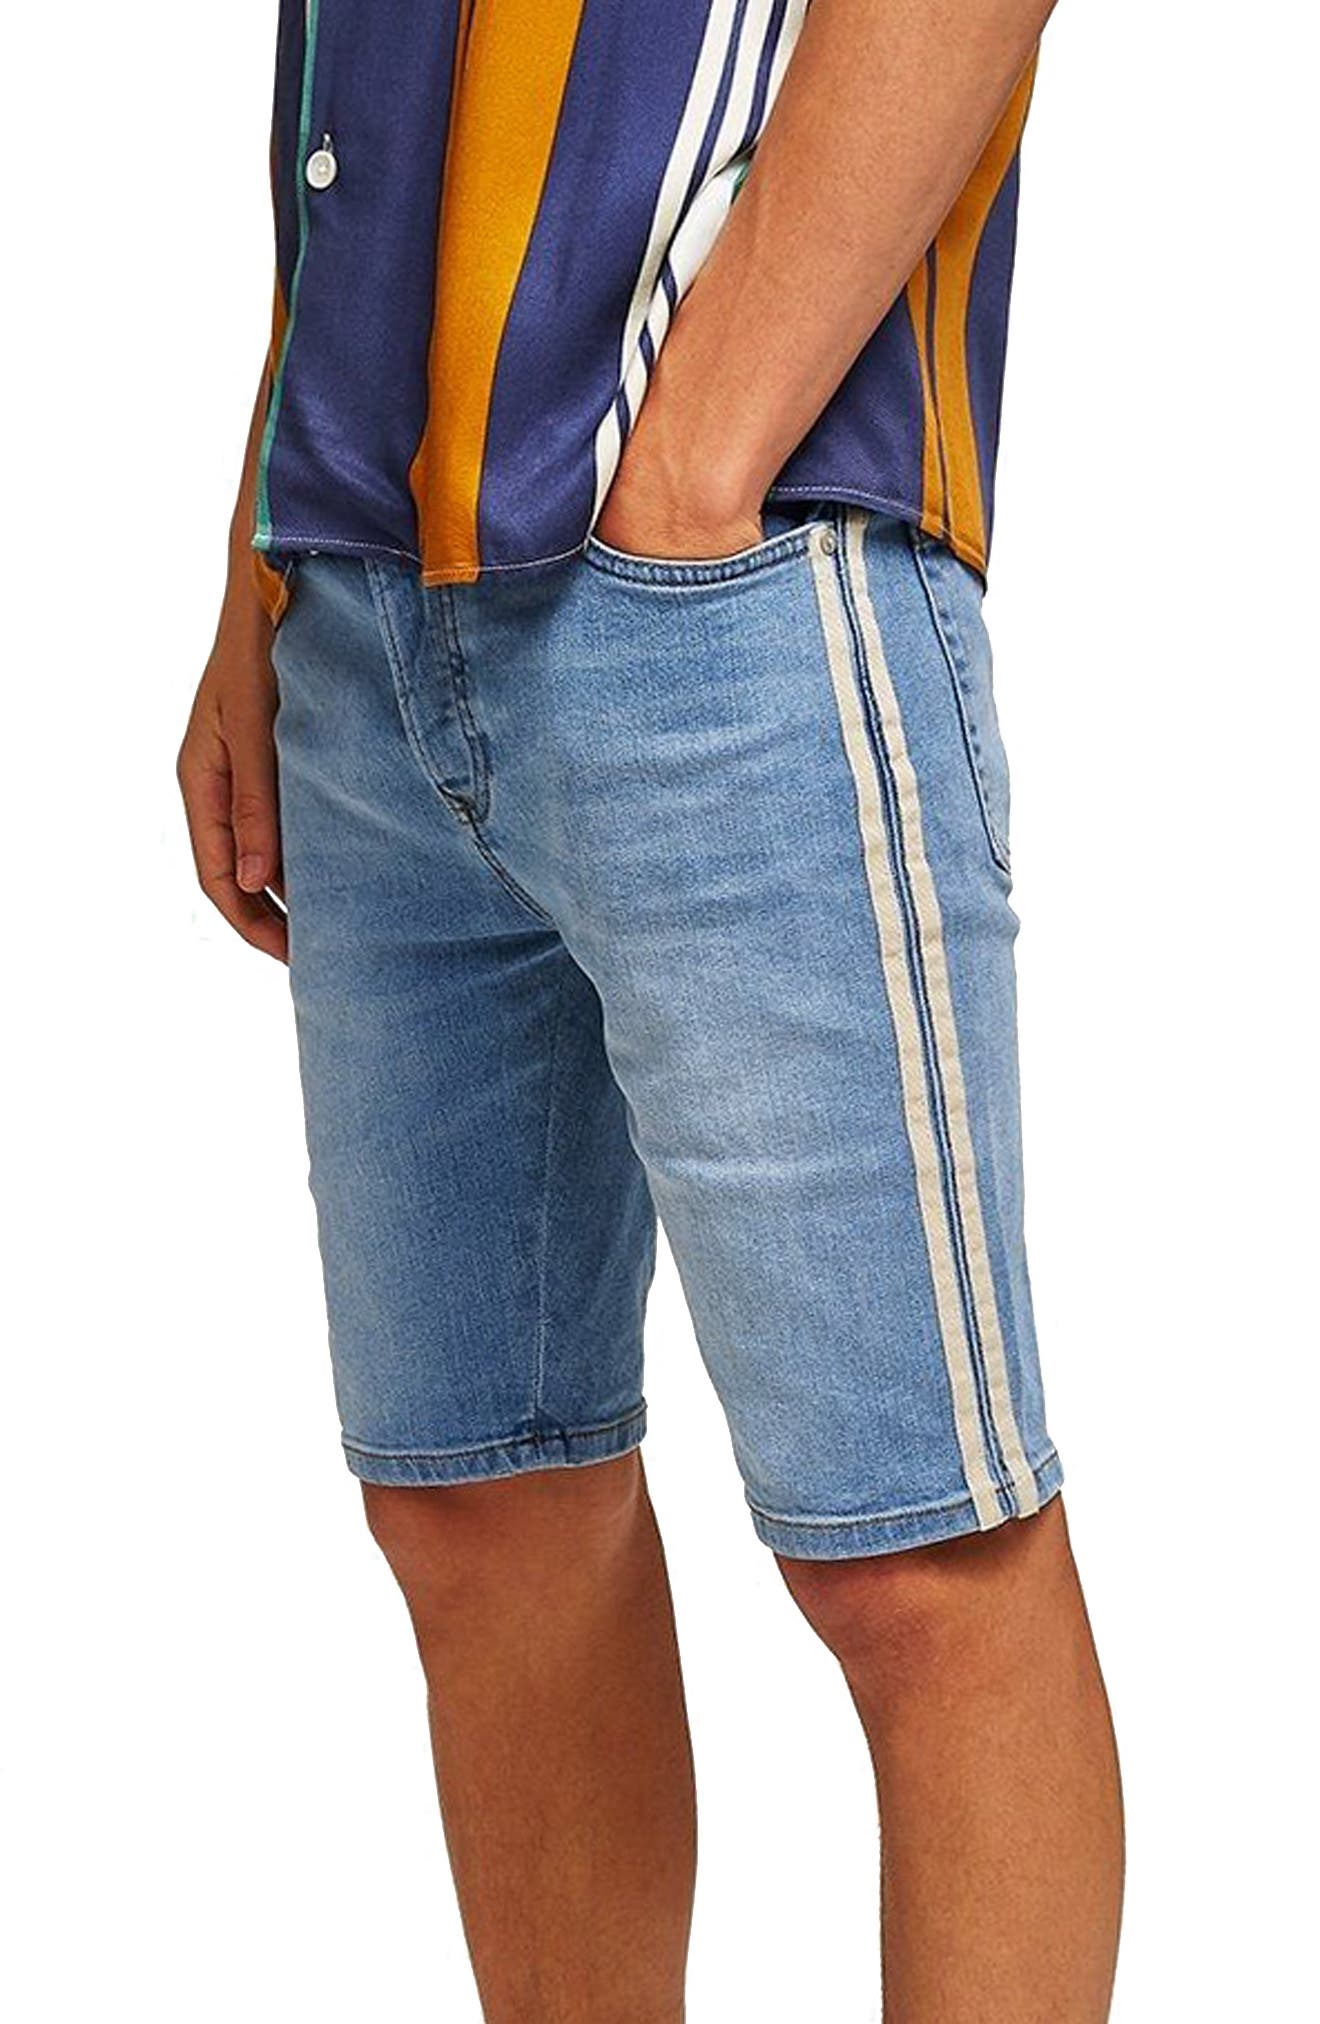 Tape Stretch Skinny Fit Denim Shorts,                             Main thumbnail 1, color,                             BLUE